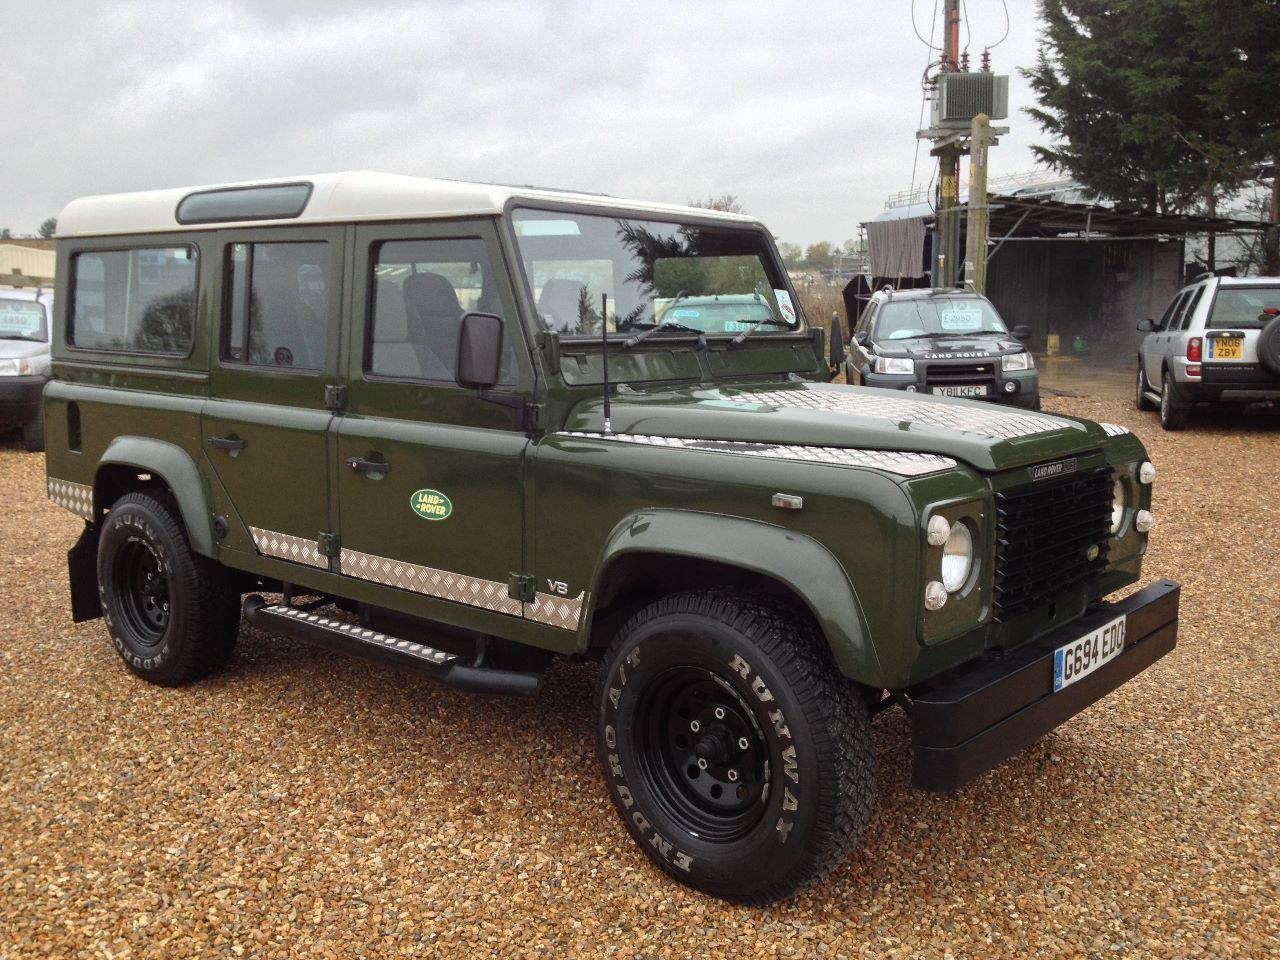 Land Rover Defender 110 3.5 V8 County Station Wagon LPG IMMACULATE CONDITION Four Wheel Drive Petrol Green